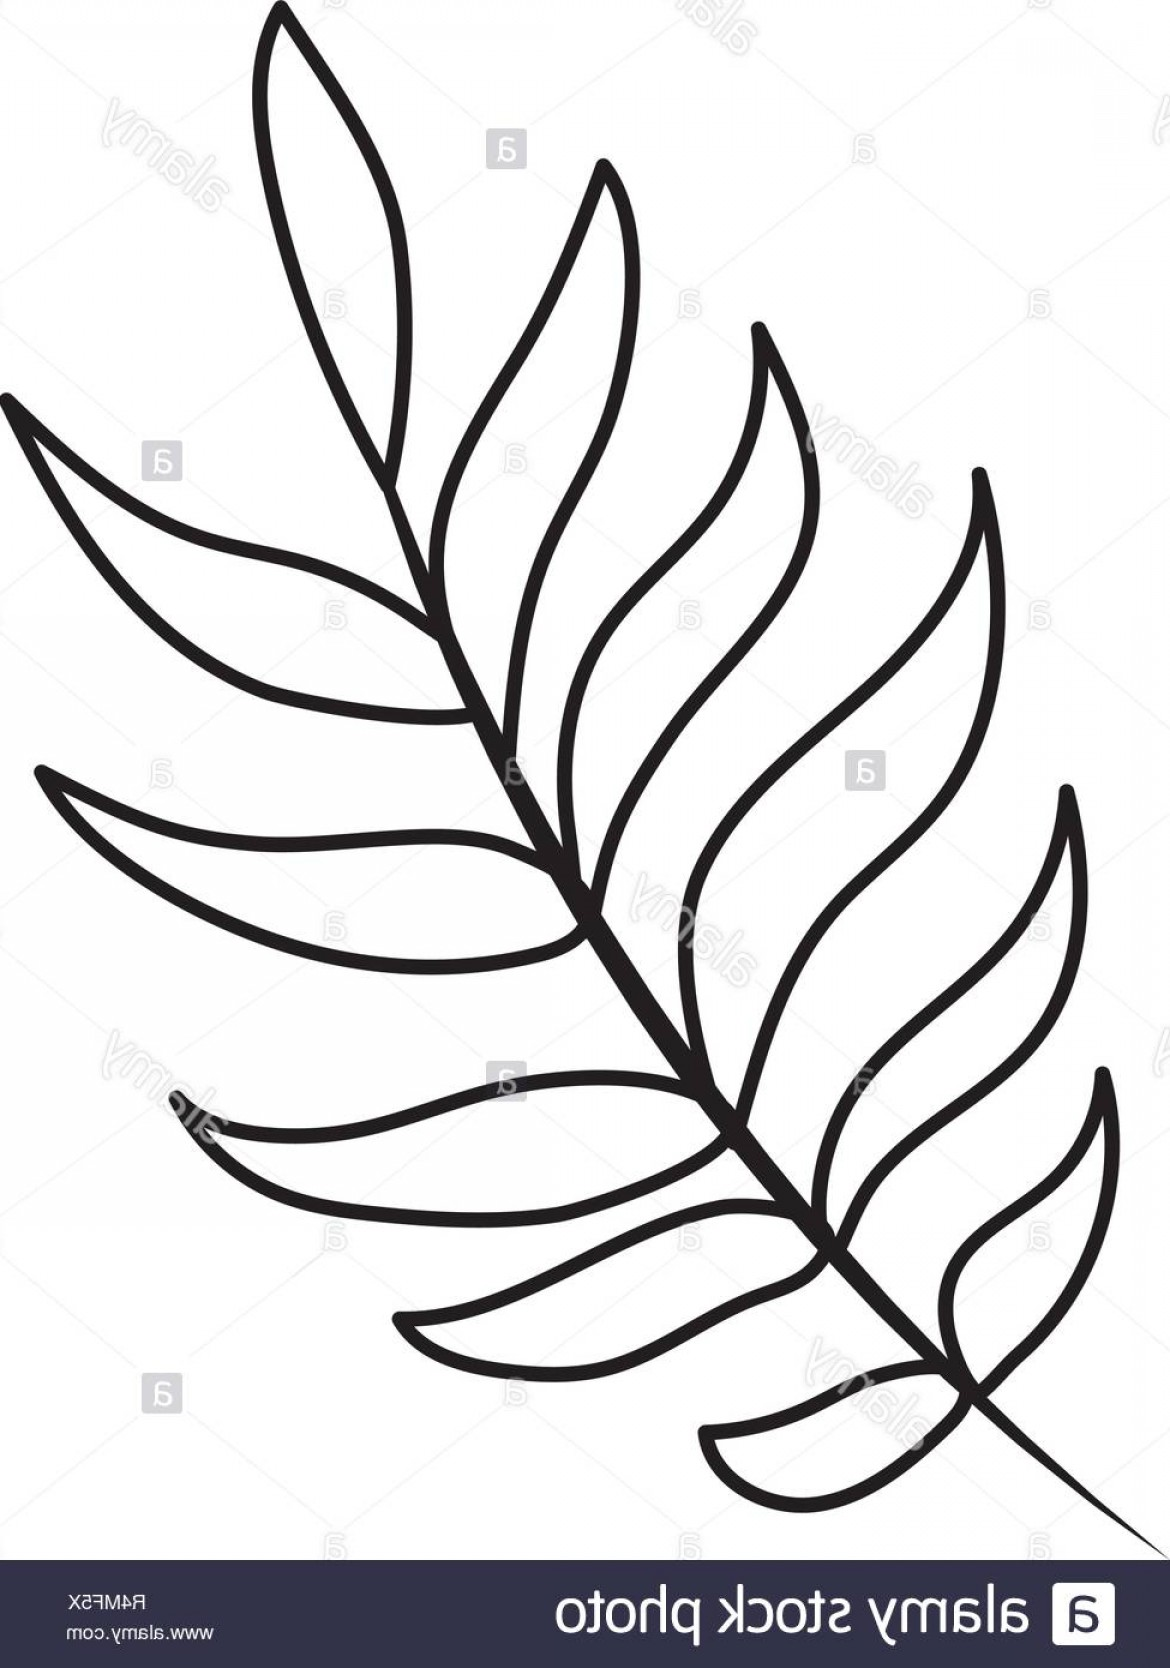 Vector Leaf Graphicd: Tropical Palm Leaf Cartoon Vector Illustration Graphic Design Image